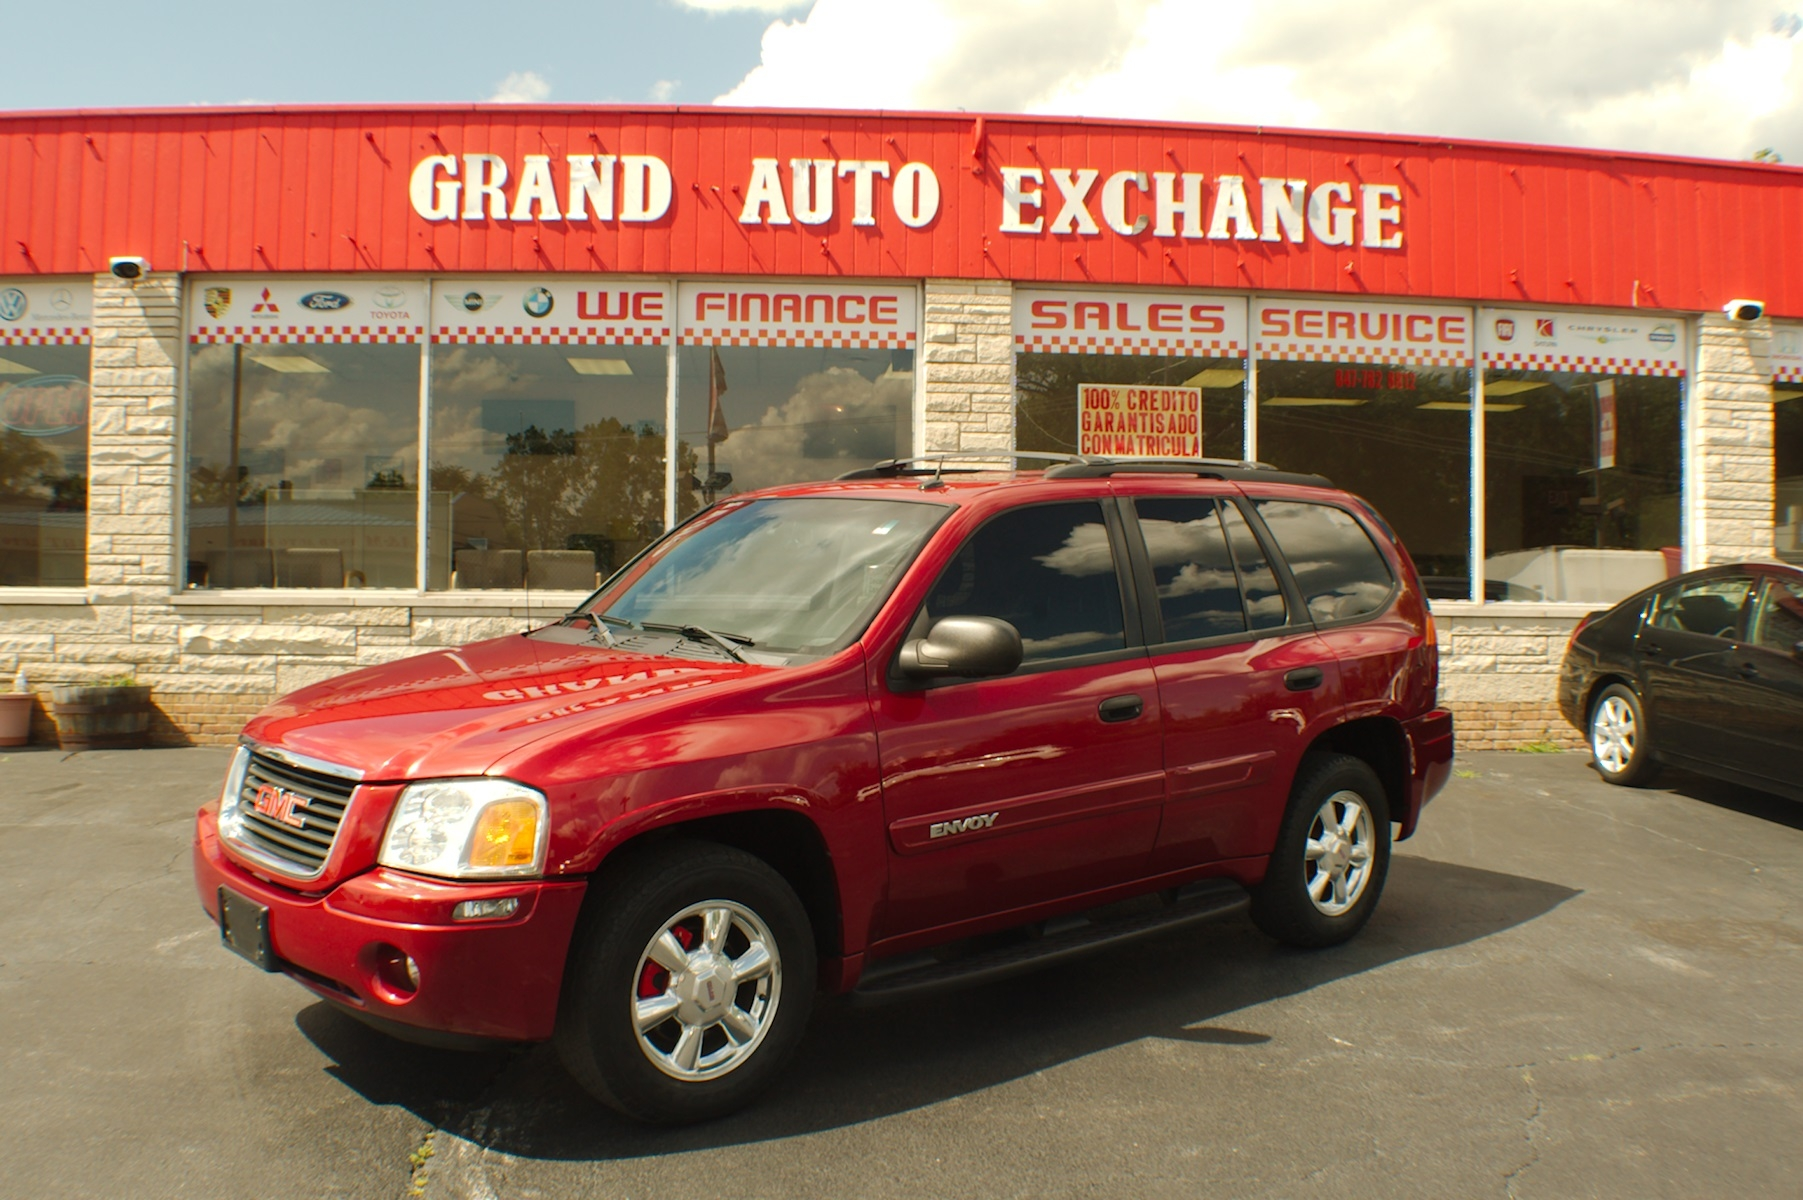 2005 GMC Envoy Red 4x4 Sport SUV Used Car Sale Antioch Zion Waukegan Lake County Illinois